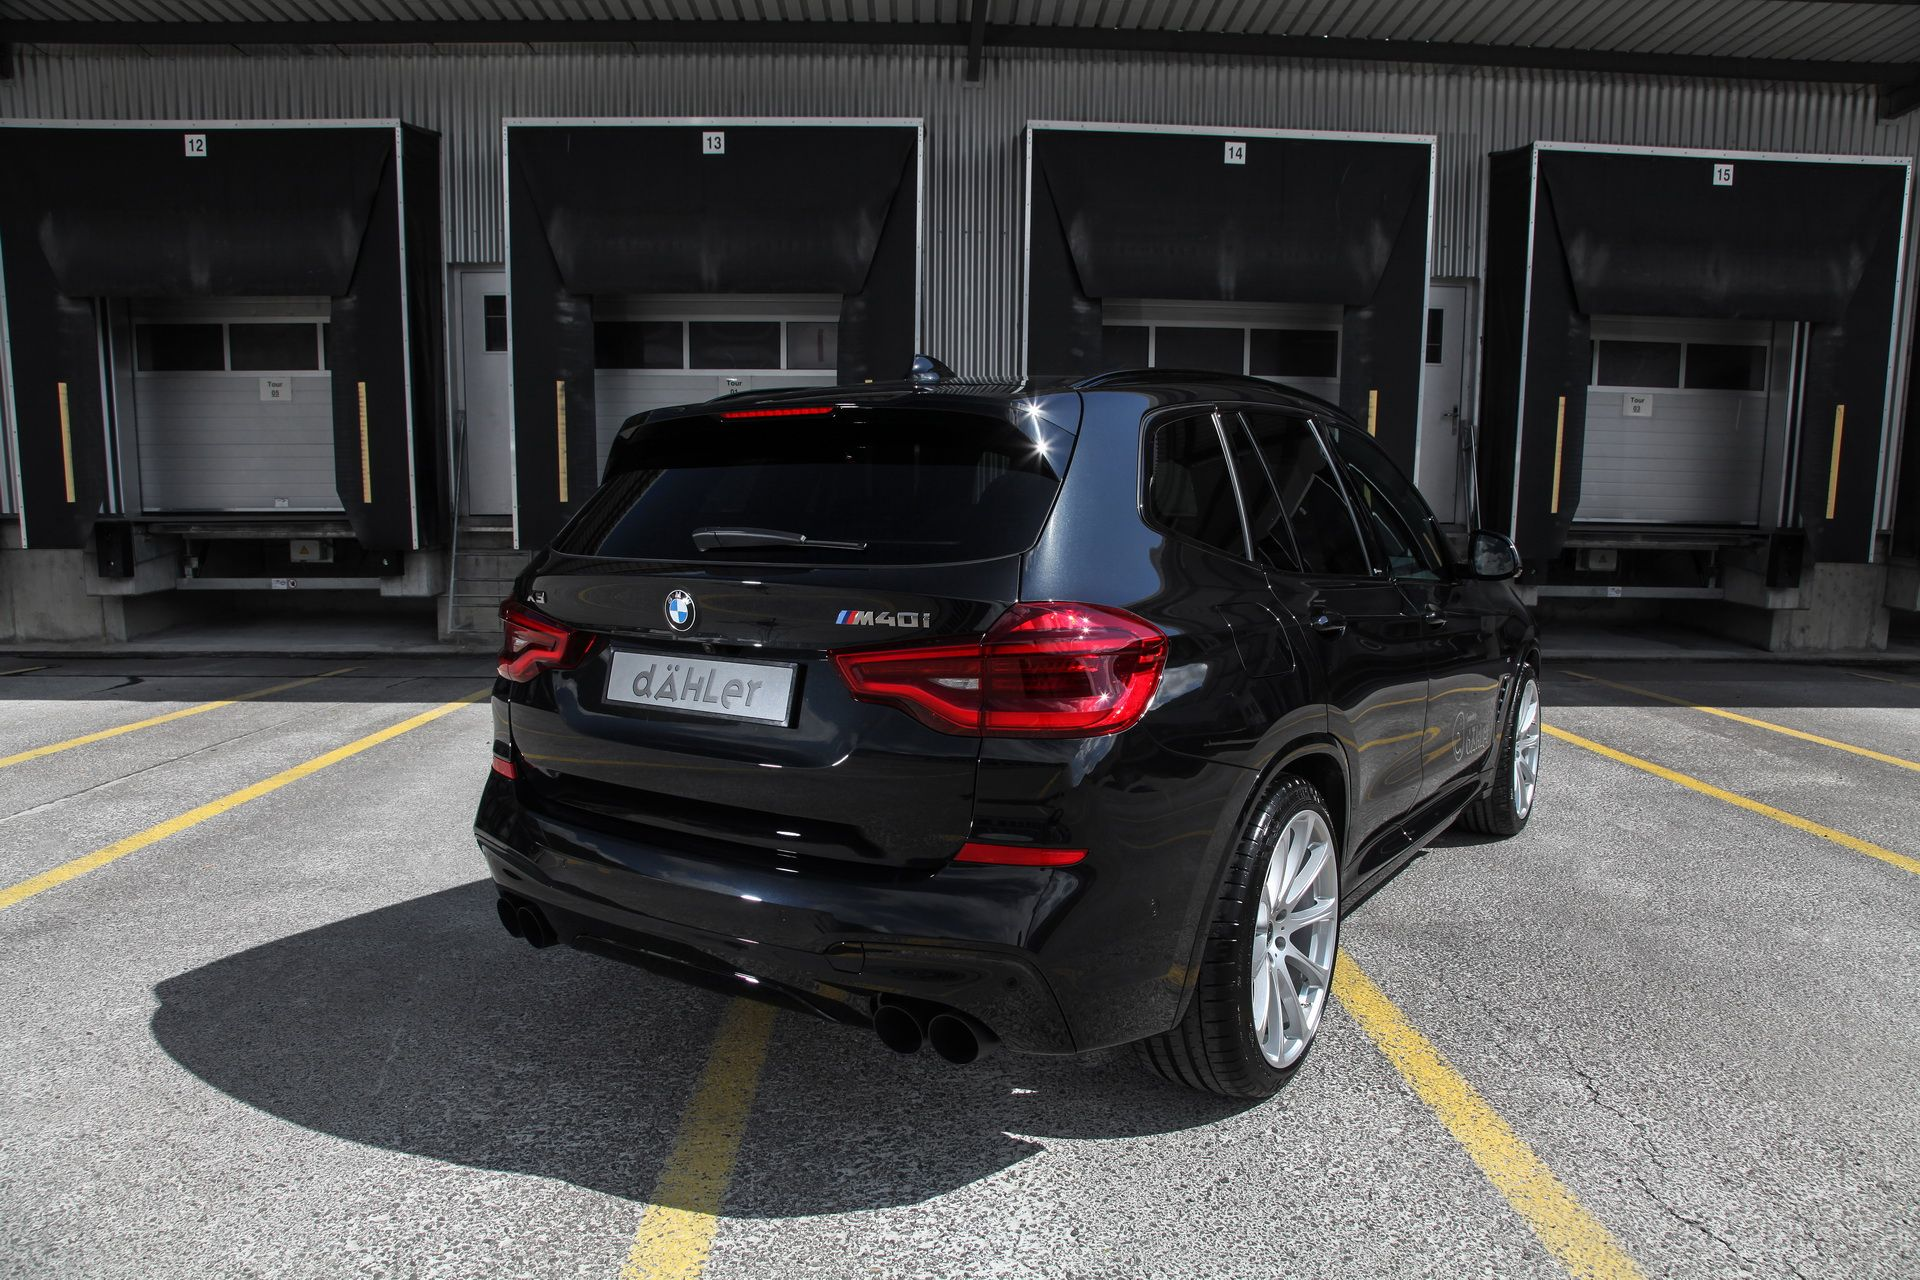 BMW_X3_M40i_by_Dahler_0011